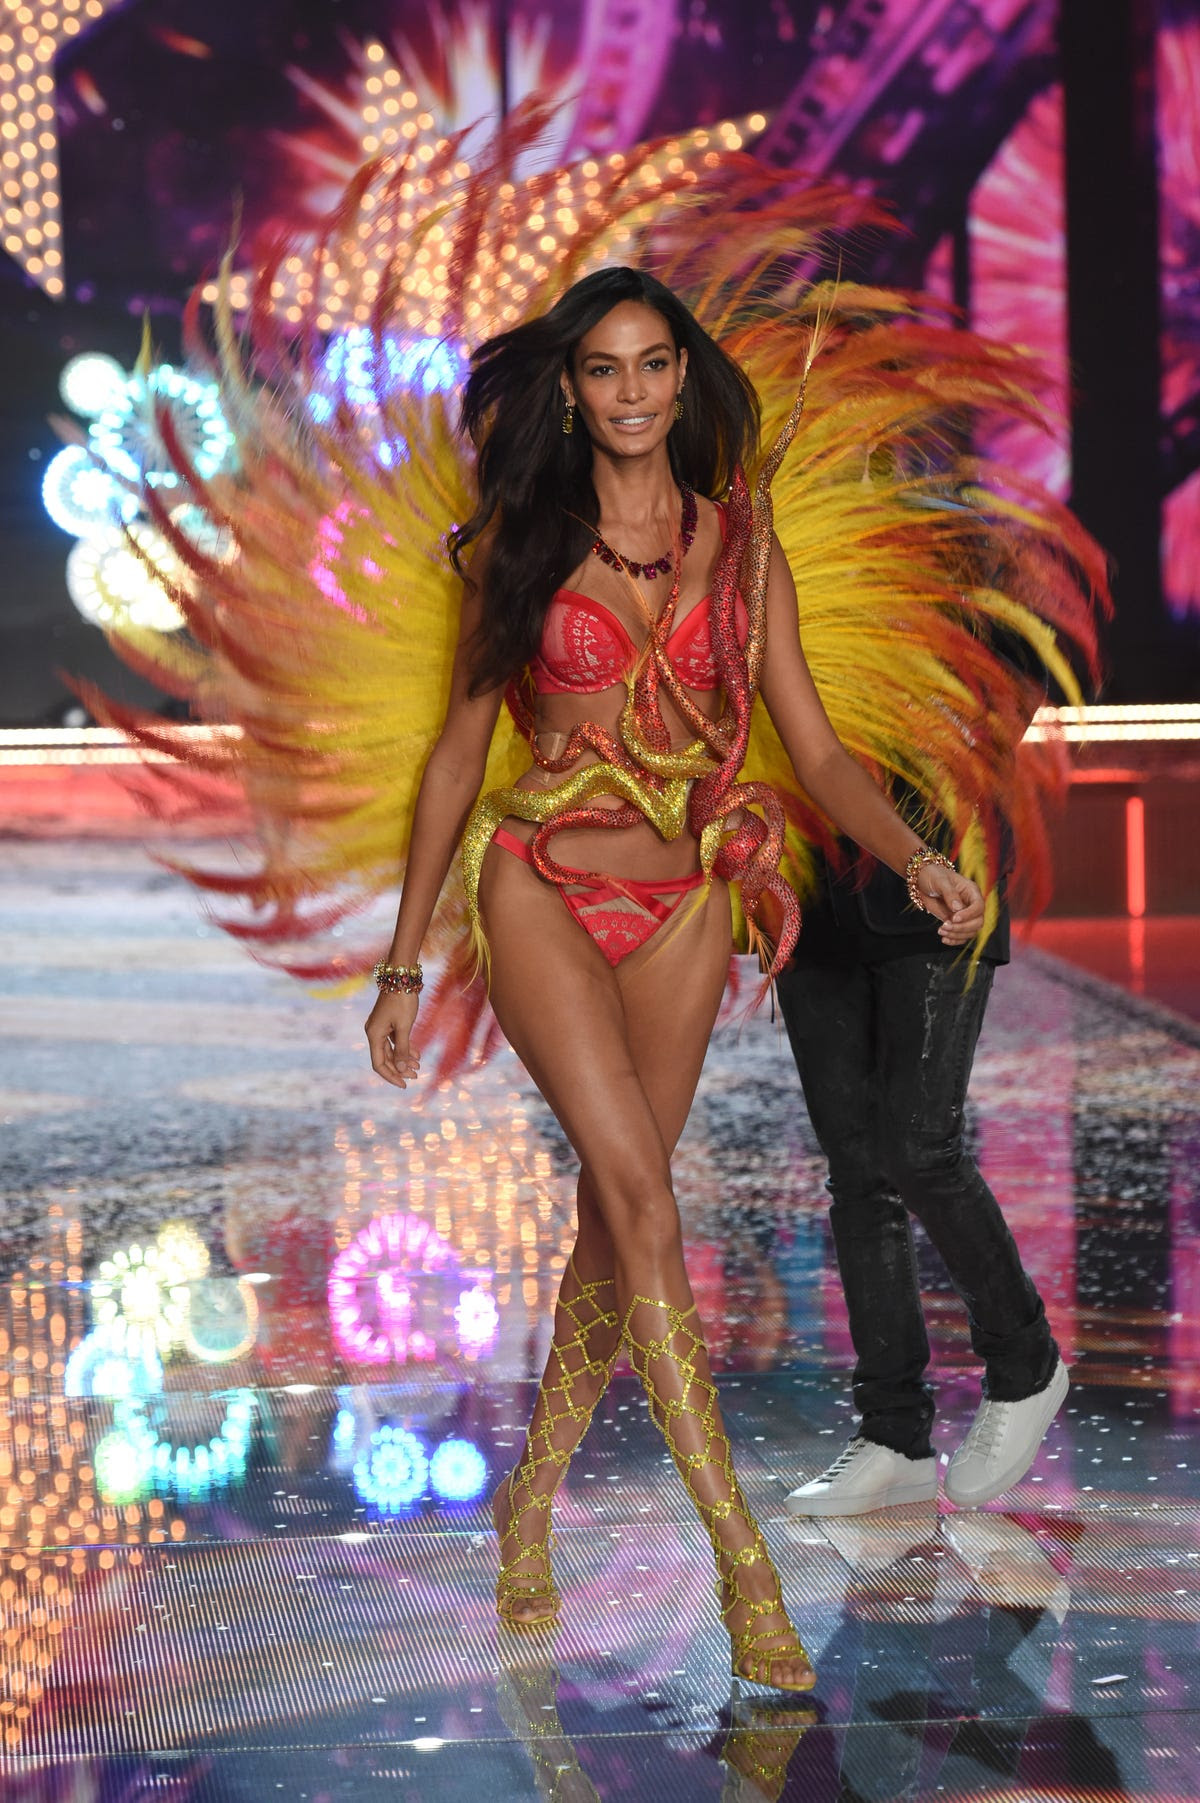 Joan Smalls was there, too. The Victoria's Secret models are tasked with the feat of luring in tremendous sales each year — and they succeed at doing so.